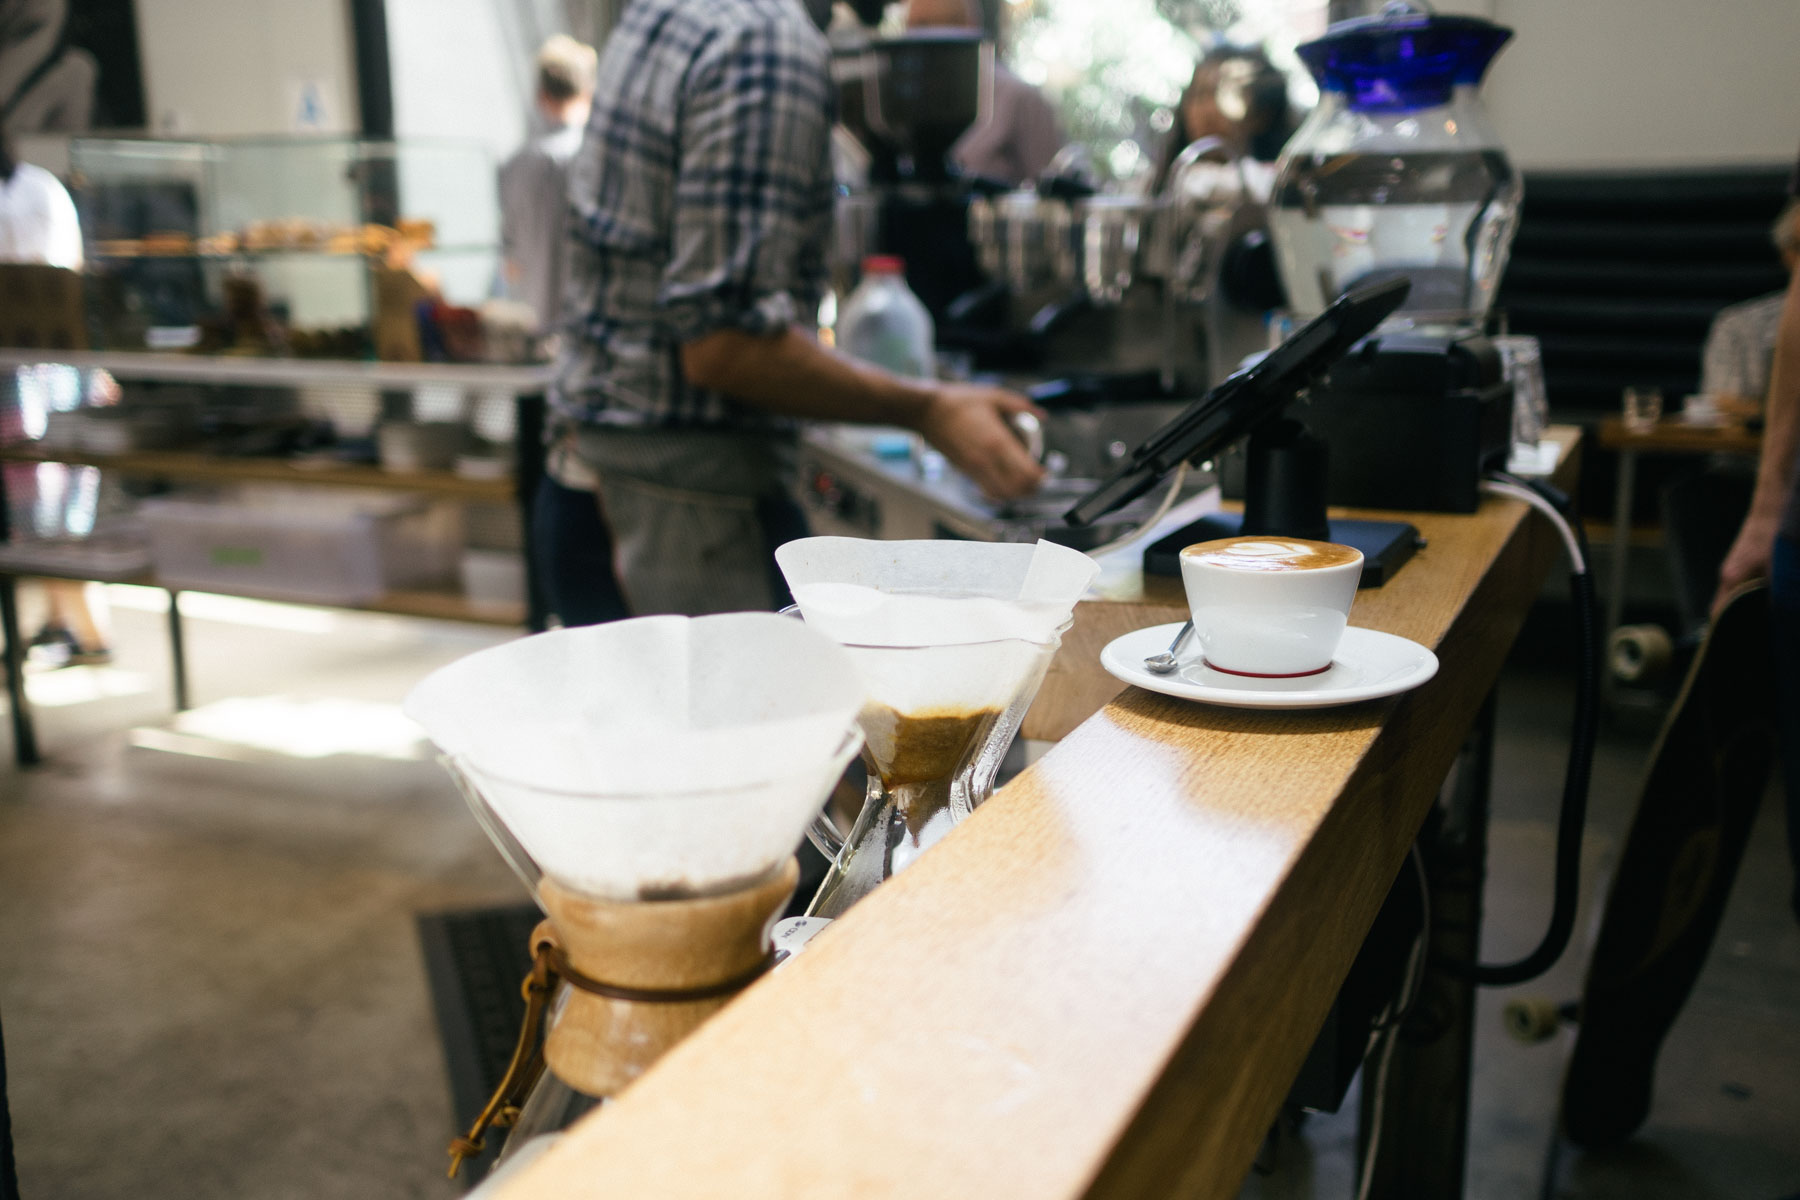 los-angeles-cray-coffee-spots-you-need-to-know-about-andante-line-cafe-deus-graffiti-sublime-intelligentsia-stumptown-7